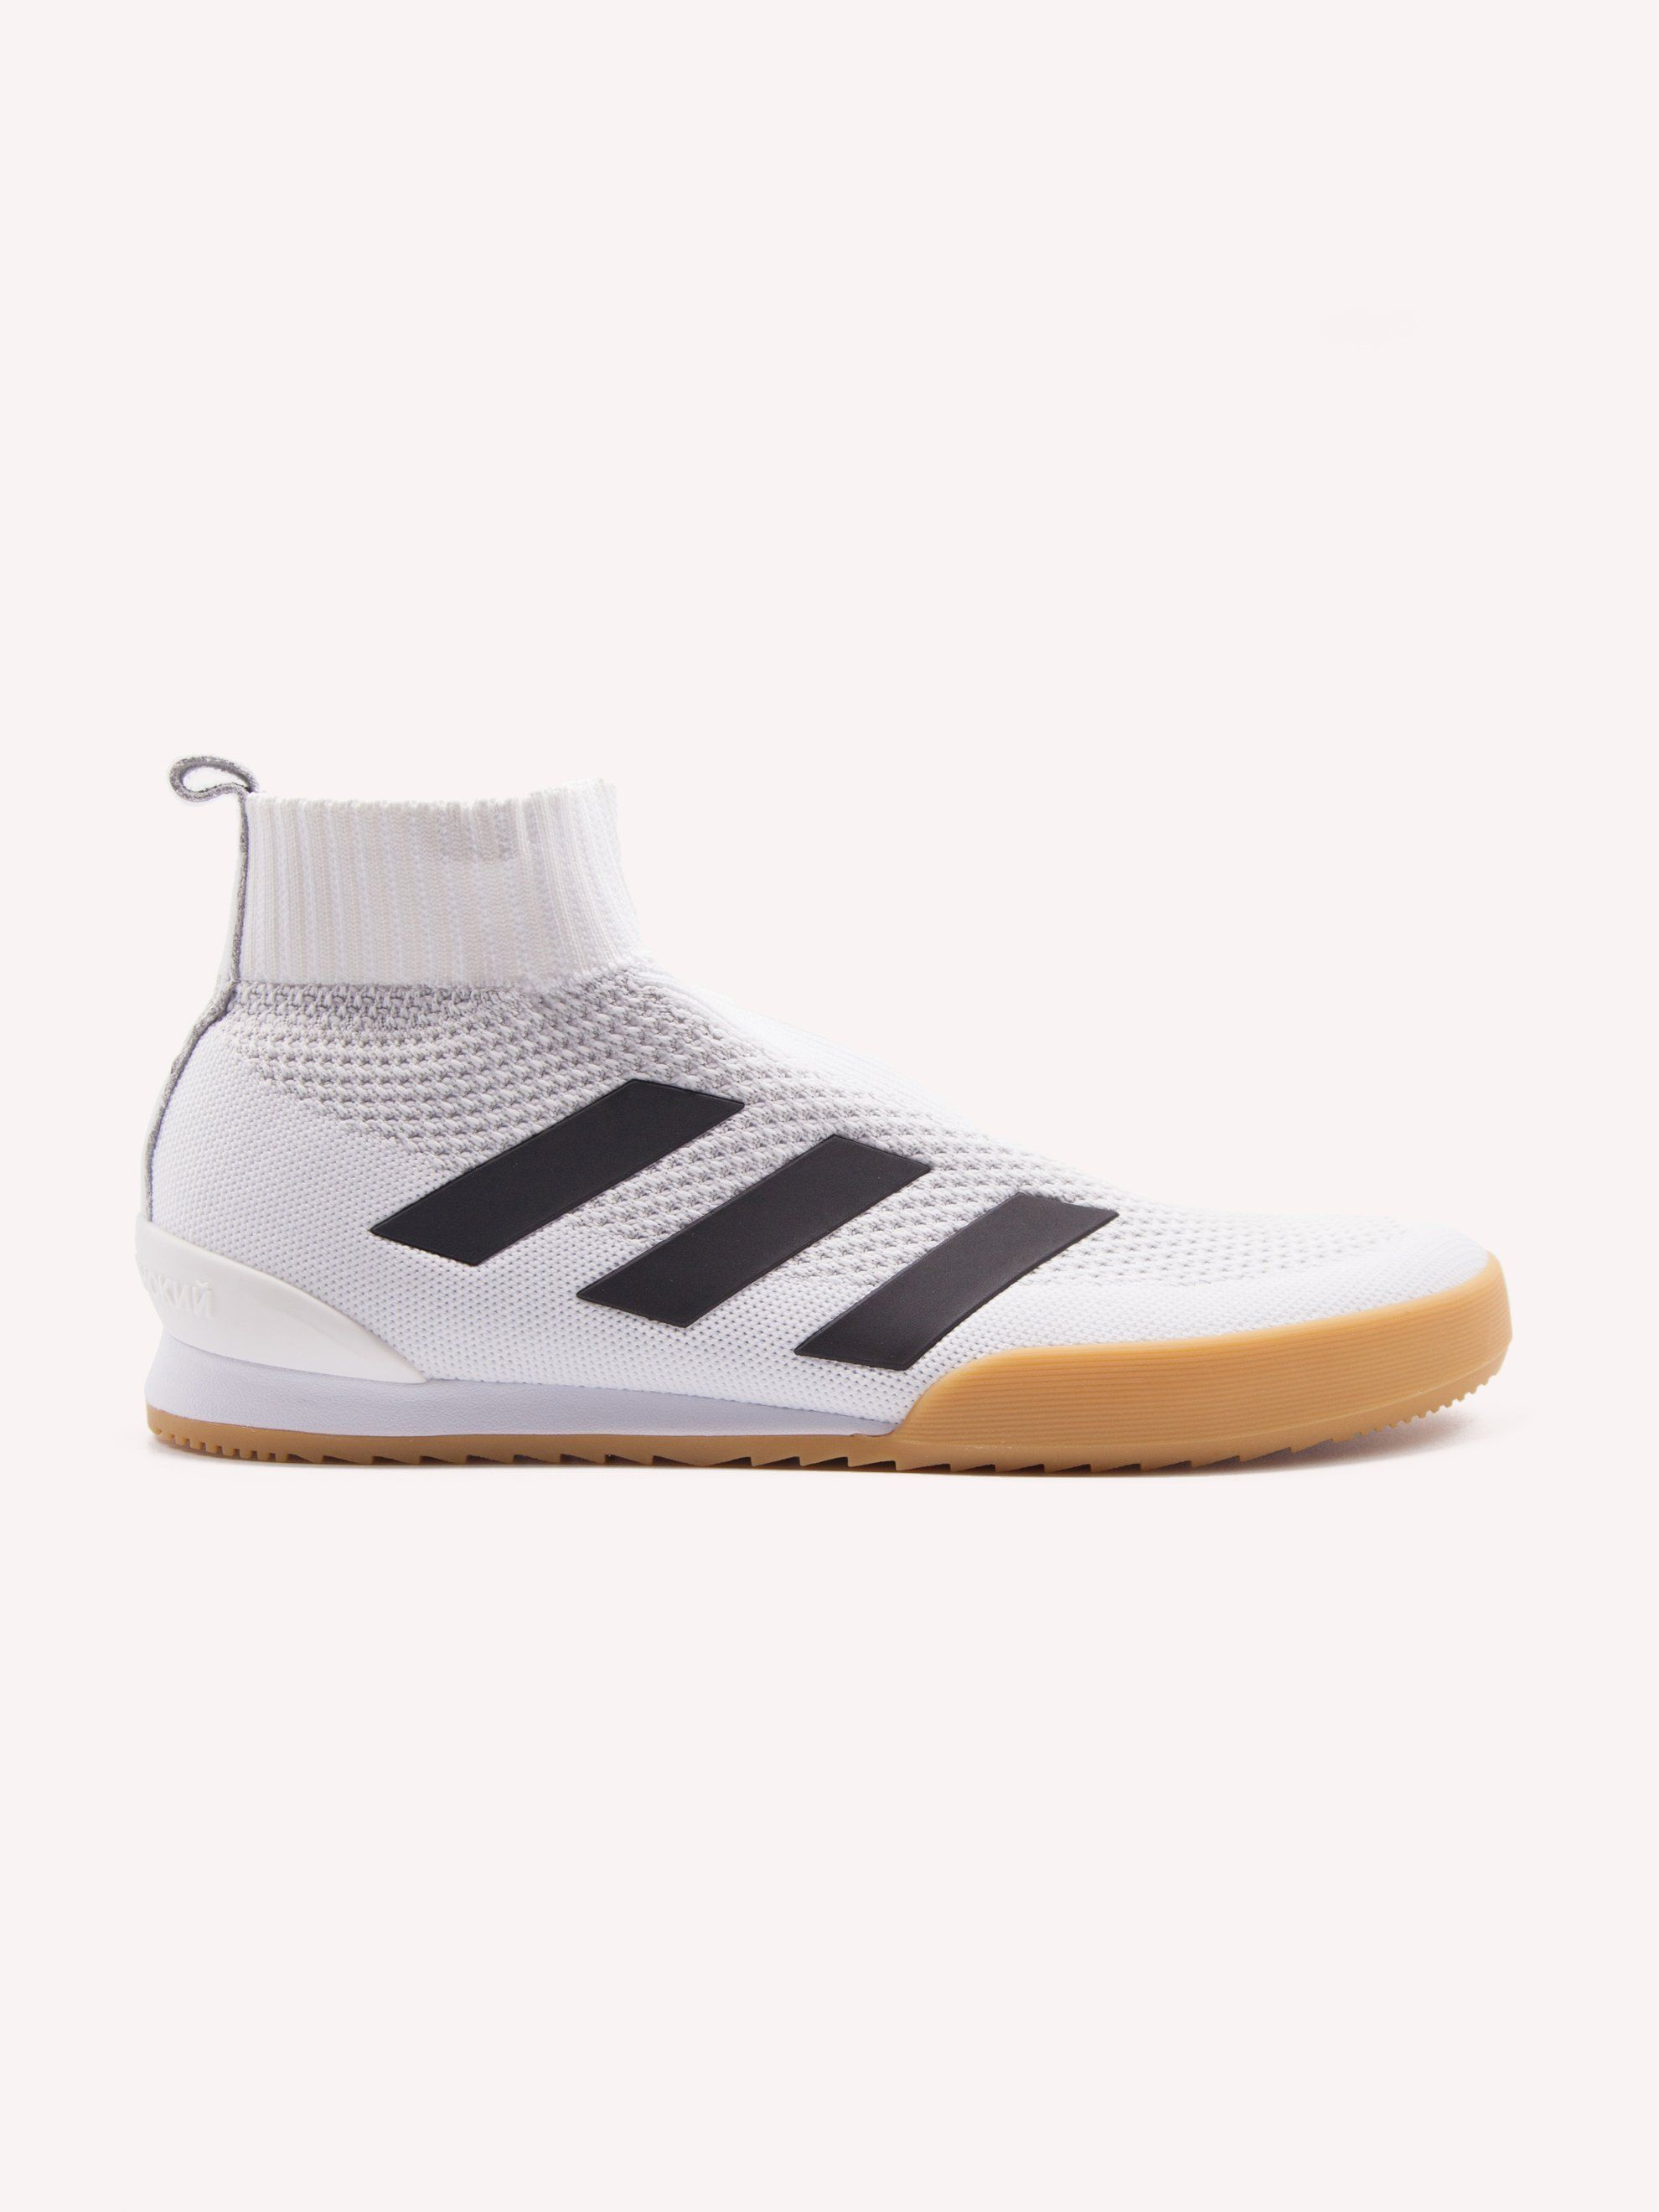 brand new a6f88 8e958 adidas Ace 16+ Super Shoes | Men's Sneakers | Adidas, Shoes ...